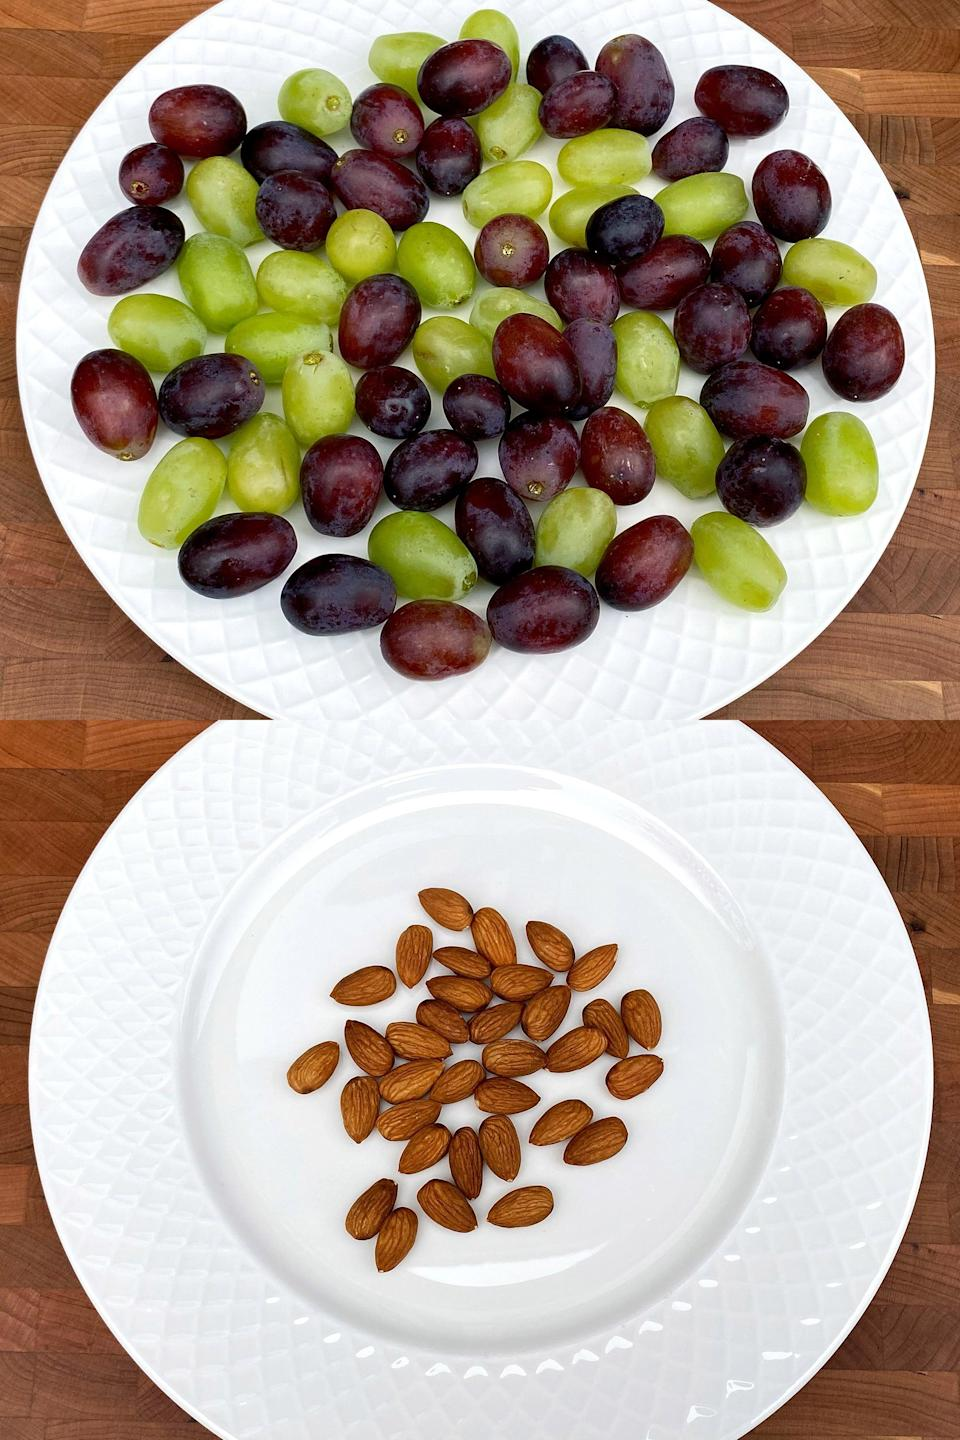 <p>You could eat 4 cups of grapes or 30 almonds for 200 calories. Which would fill you up more? Most people couldn't eat that many grapes, but that's just a small handful of almonds - it's easy to go back for another handful, which would be closer to 300 or 400 calories. See how easy it is to overeat on high-calorie-density foods?</p>